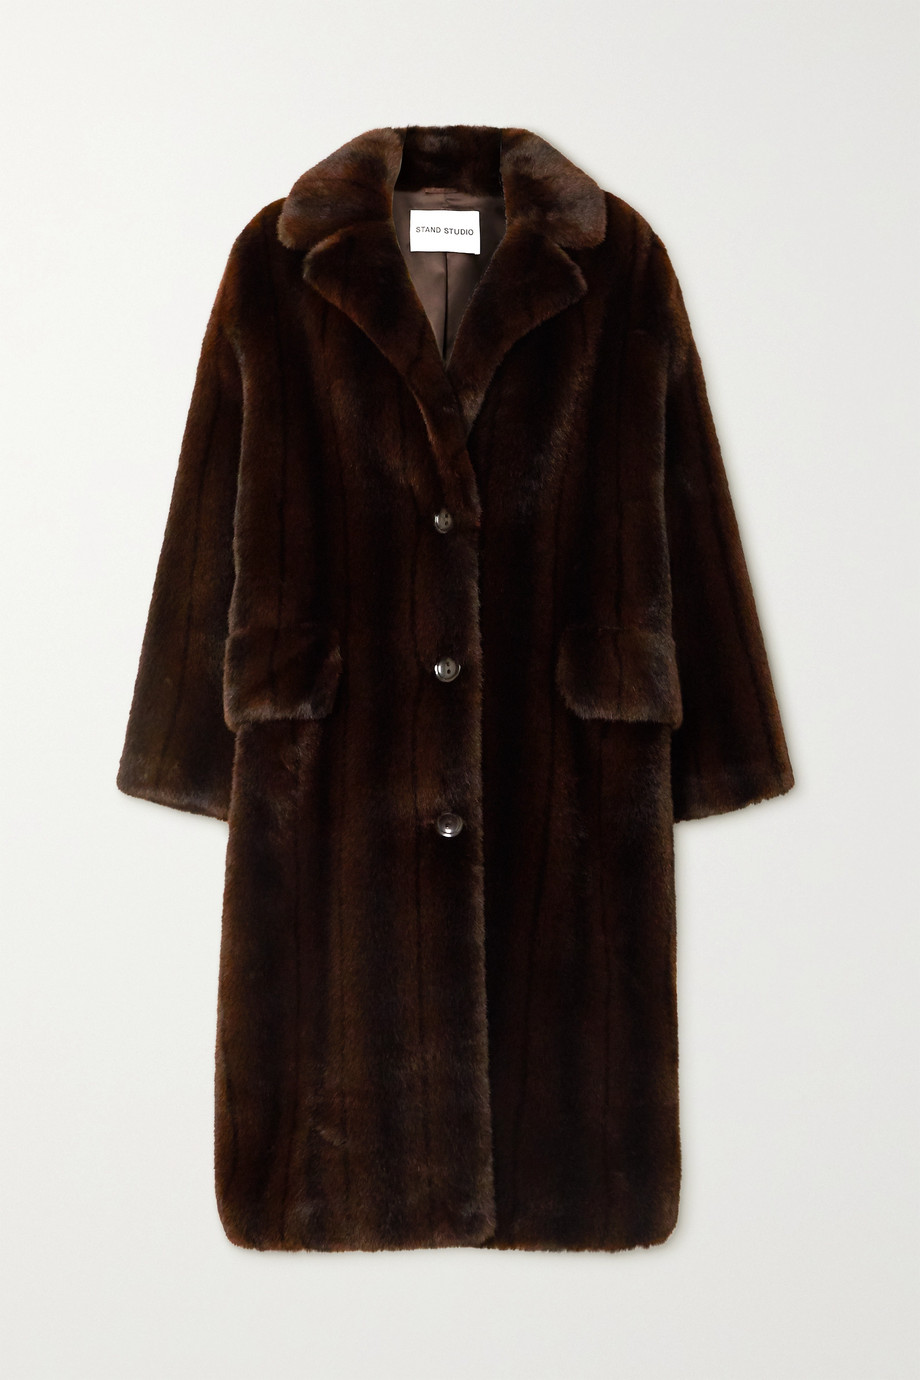 Stand Studio Theresa faux fur coat